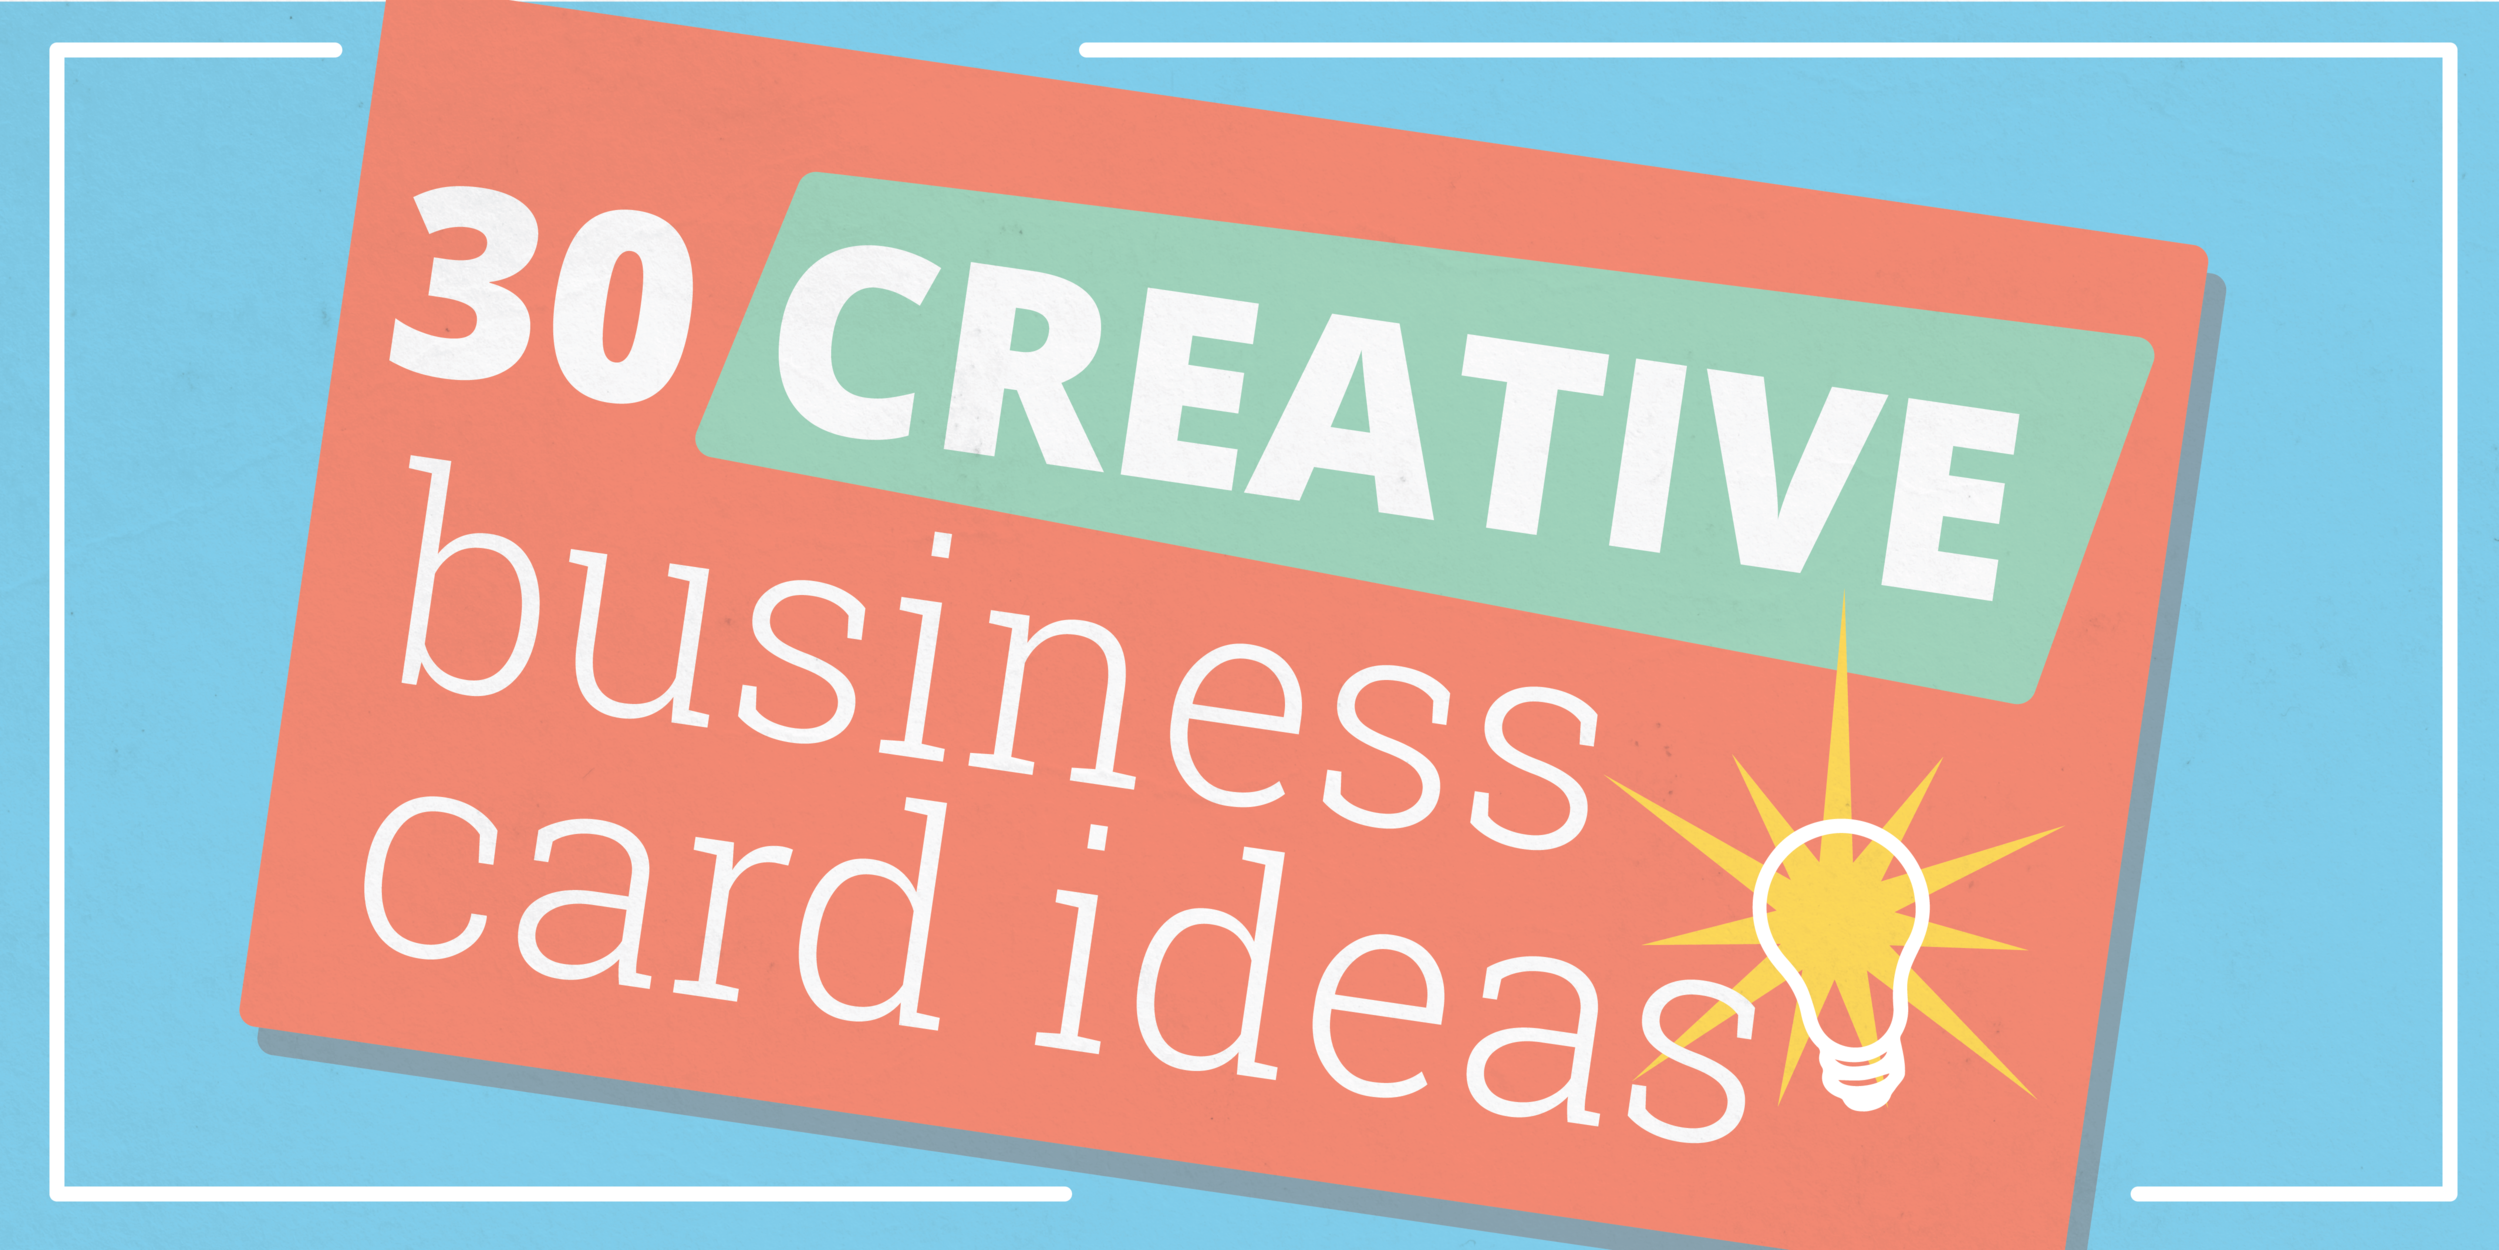 30 creative business card ideas designs lucidpress - Business Cards Ideas Designs